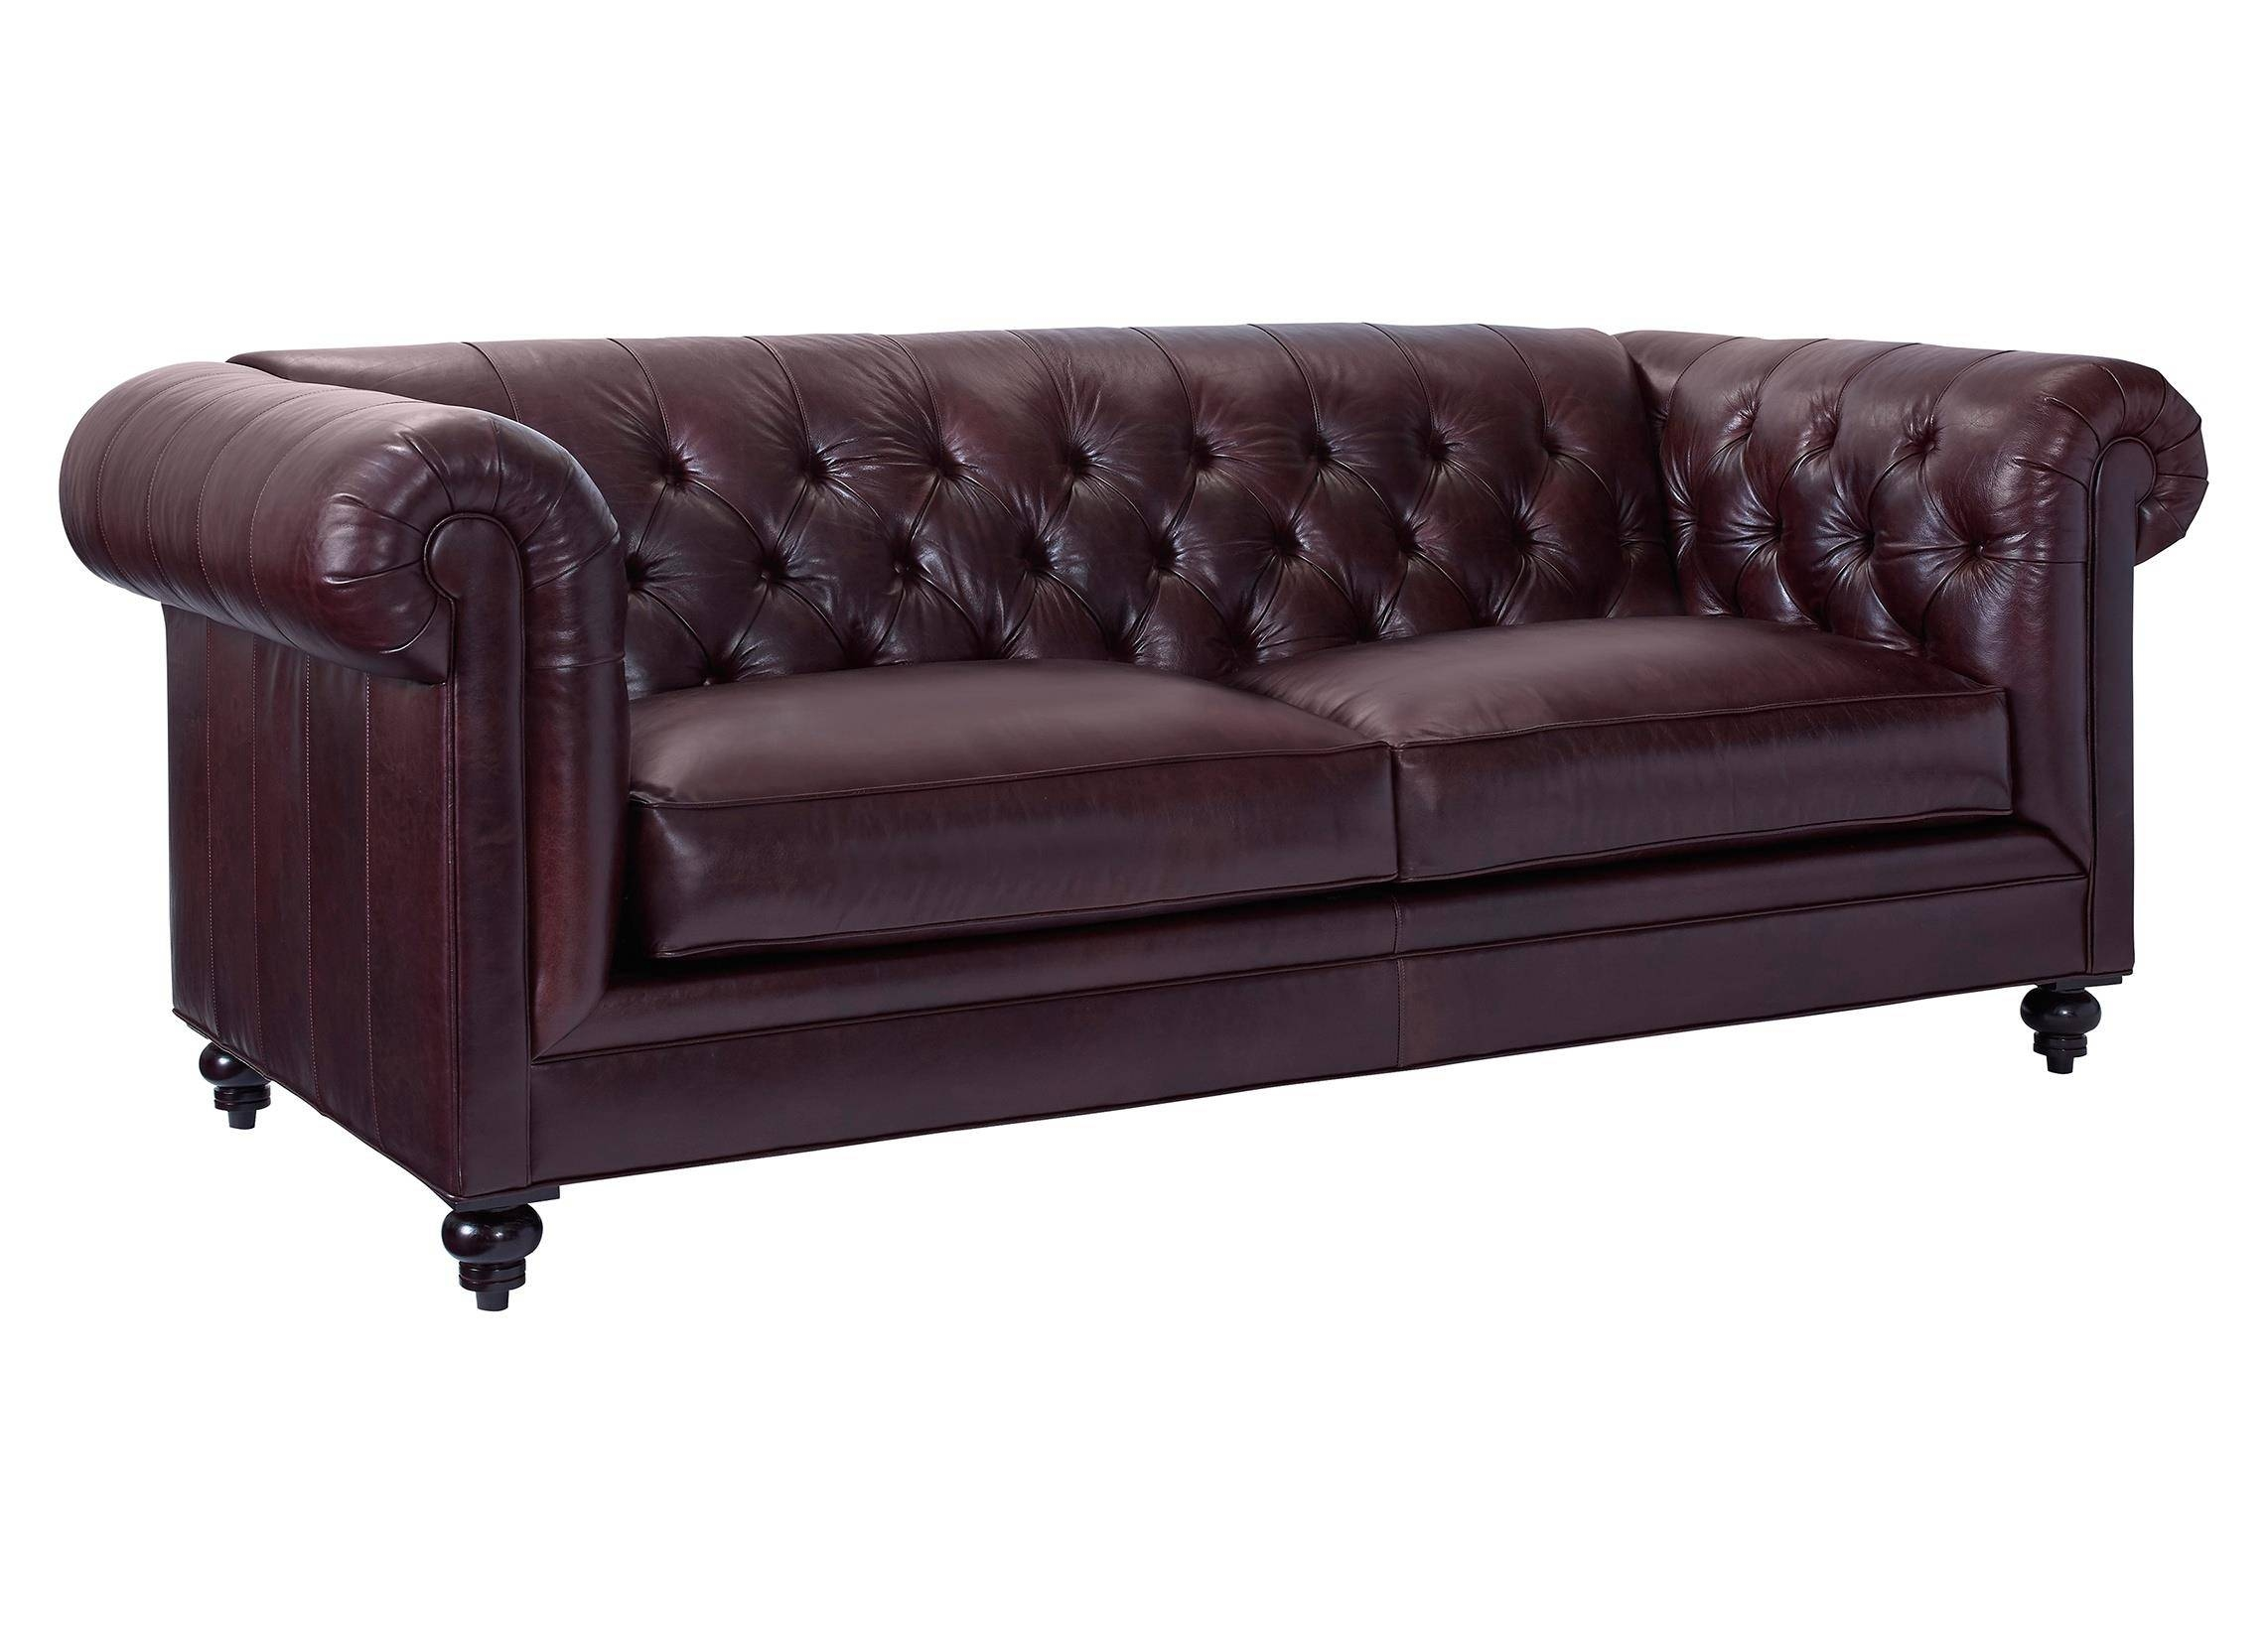 Broyhill Furniture Heath Traditional Chesterfield Sofa With Rolled with Broyhill Sectional Sofas (Image 5 of 30)